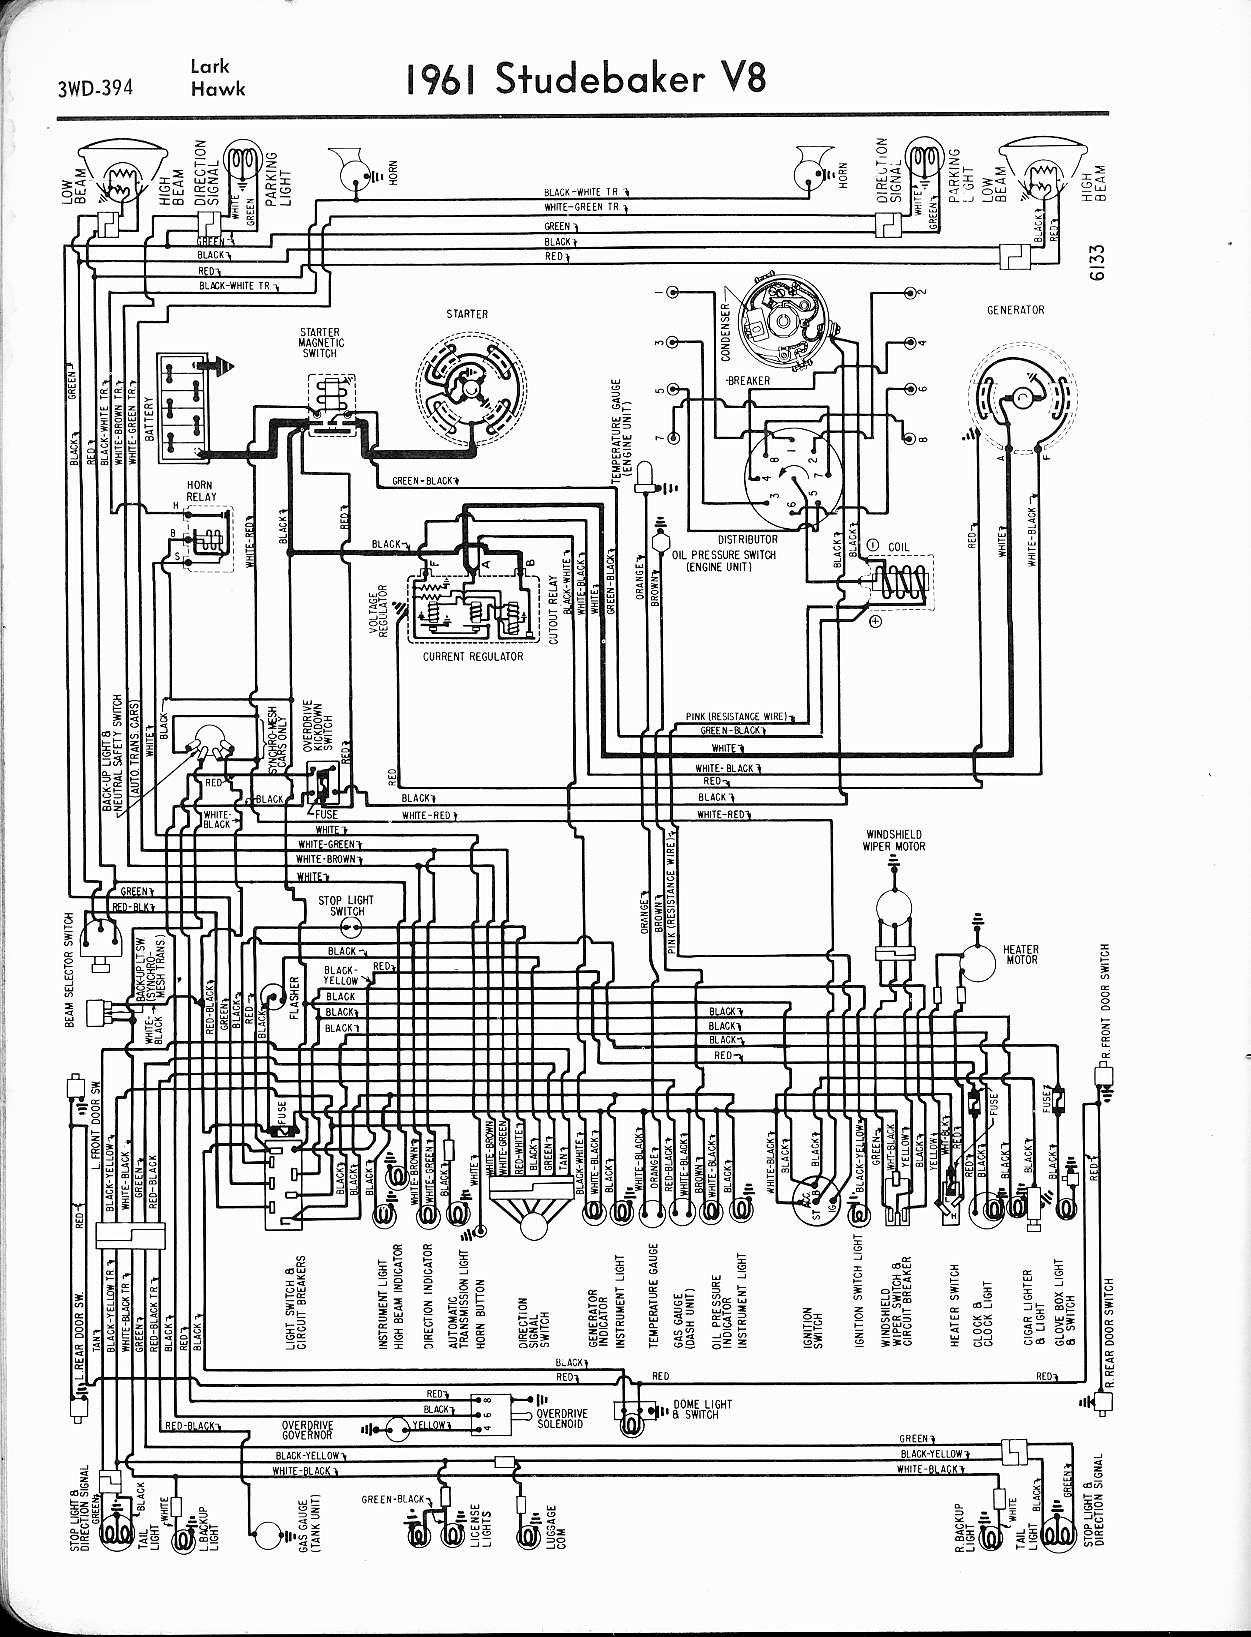 MWire5765 394 studebaker wiring diagrams the old car manual project old car manual project wiring diagrams at soozxer.org